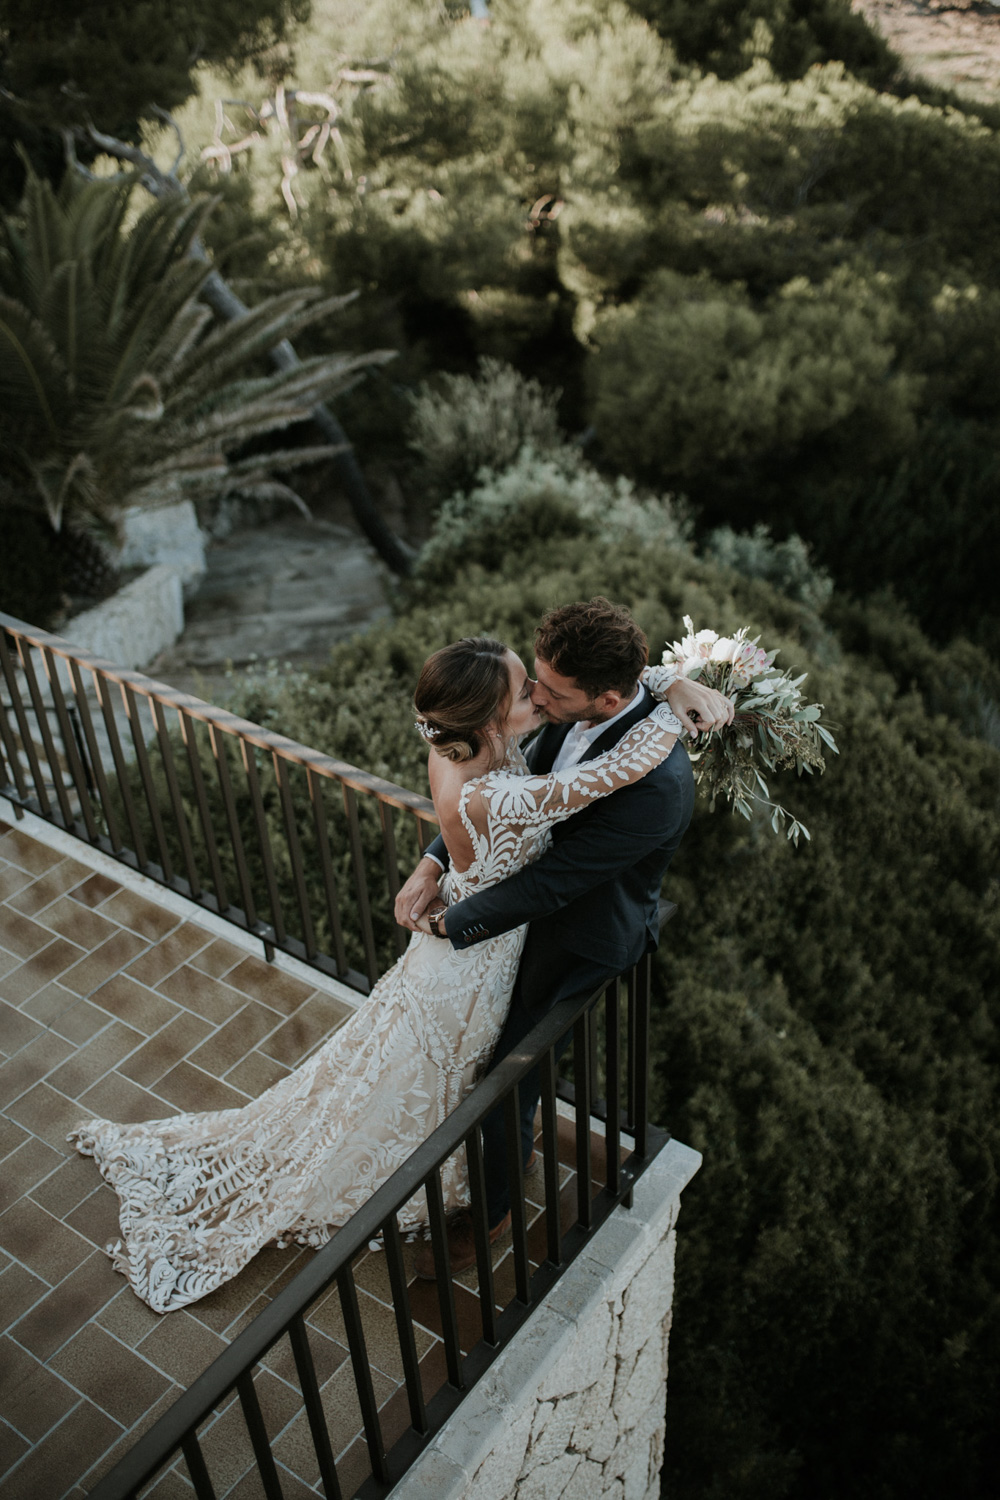 Newly Married Couple On Balcony